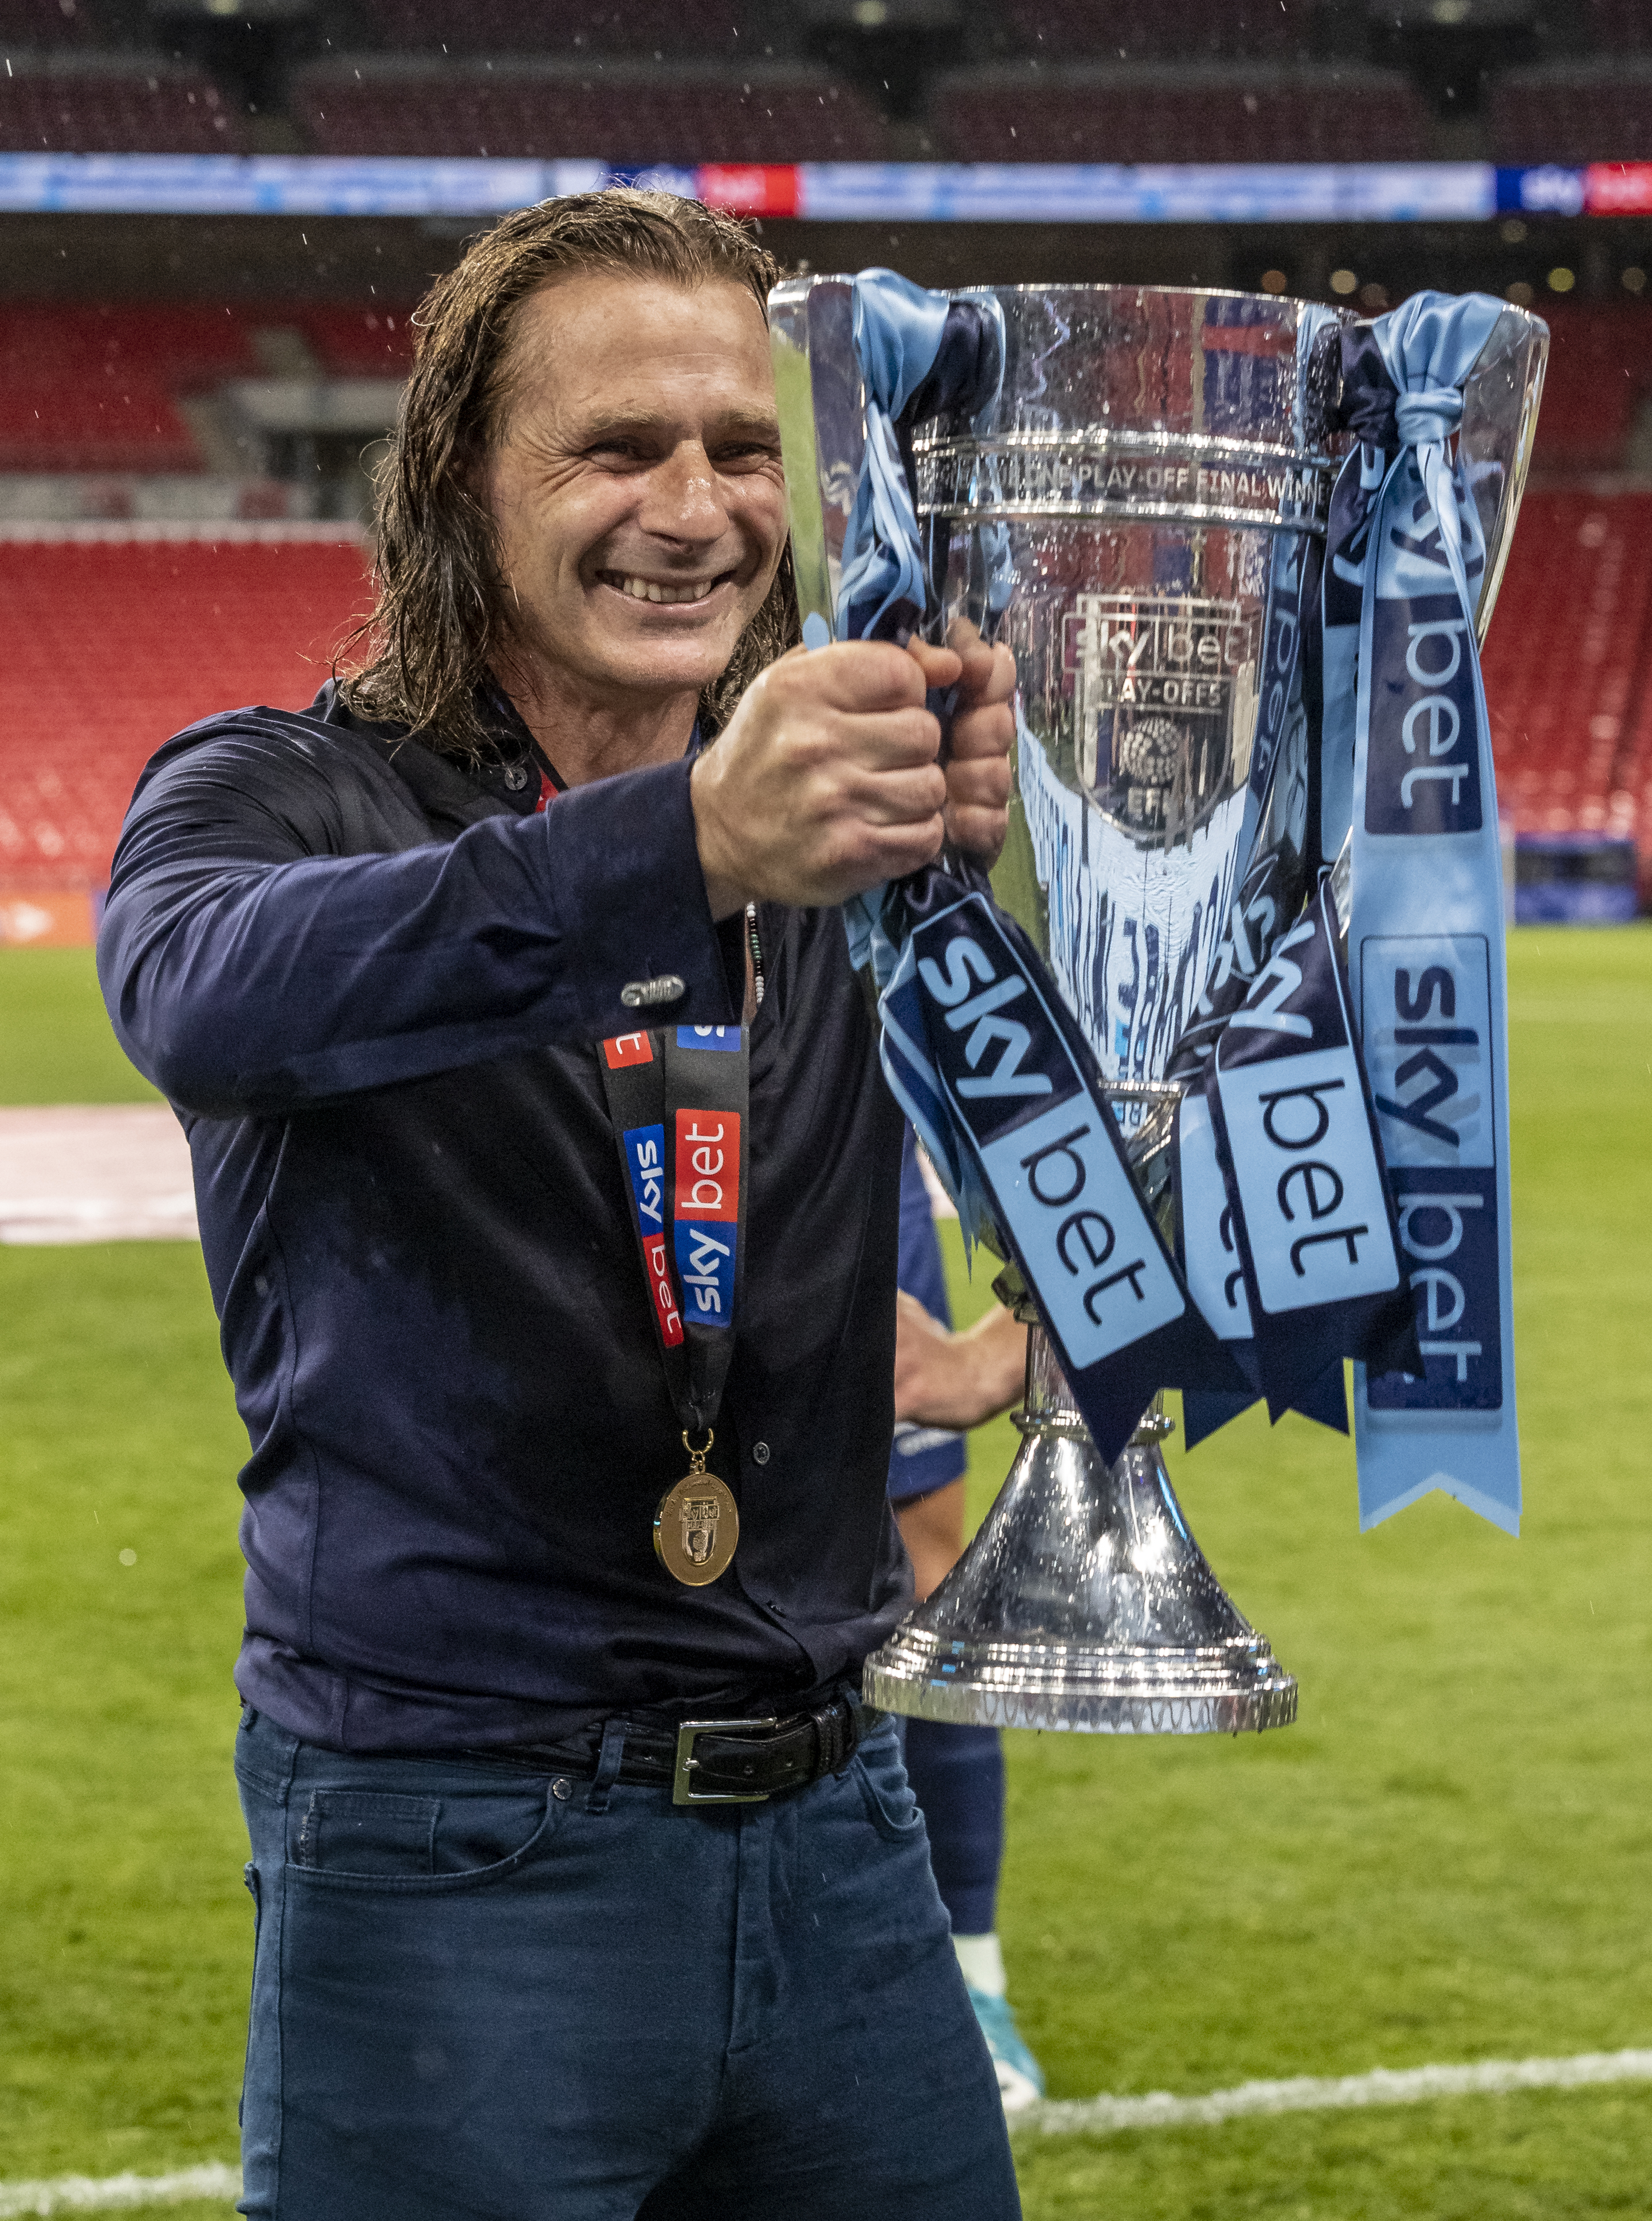 LONDON, ENGLAND - JULY 13: Wycombe Wanderers' manager Gareth Ainsworth holds the trophy during the Sky Bet League One Play Off Final between Oxford United and Wycombe Wanderers at Wembley Stadium on July 13, 2020 in London, England. (Photo by Andrew Kearns - CameraSport via Getty Images)